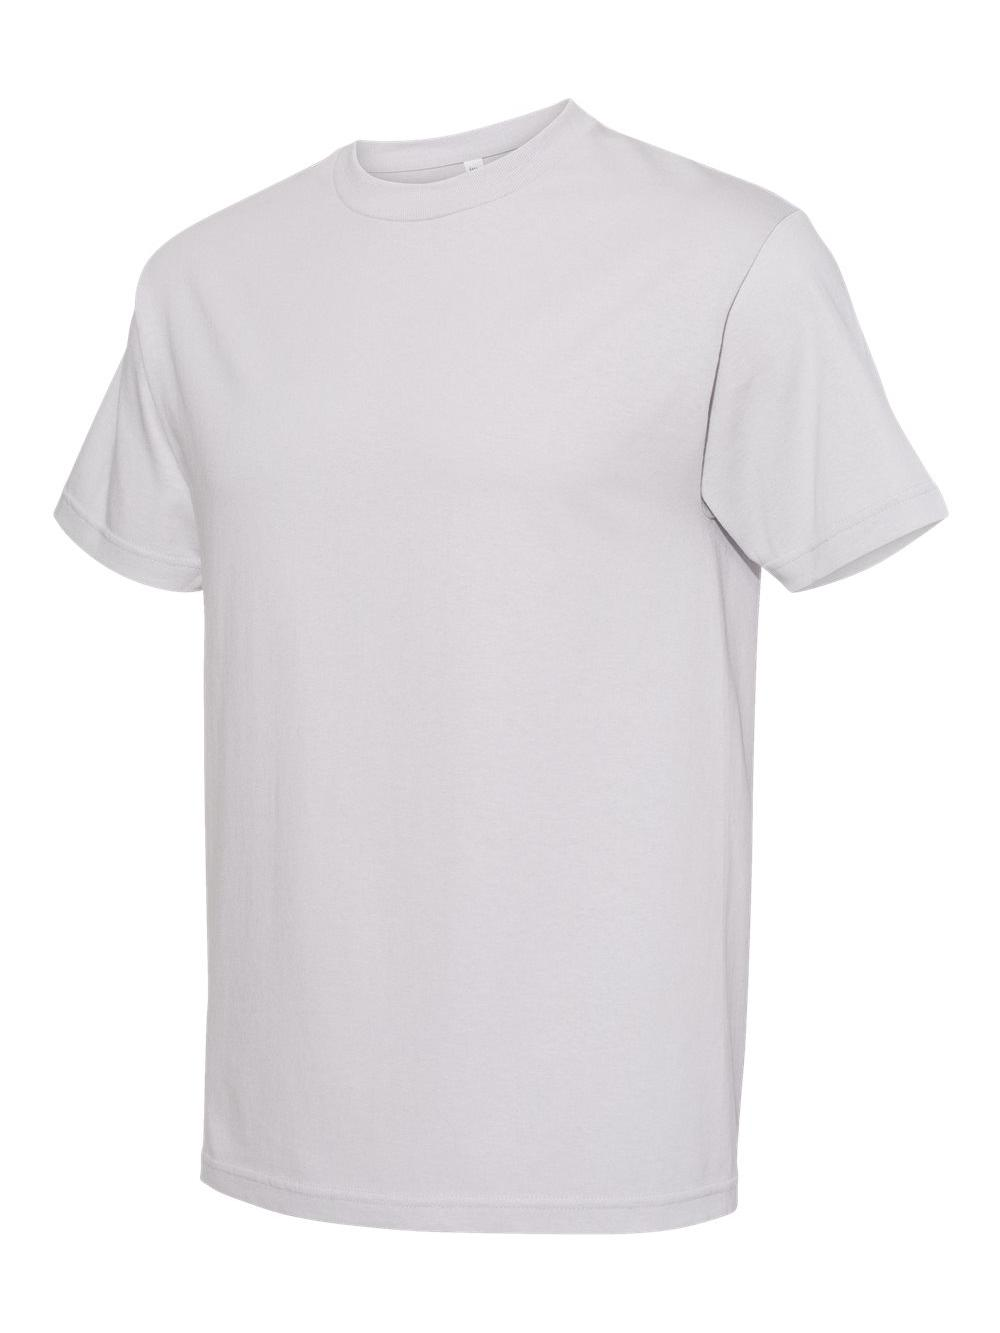 ALSTYLE-Classic-T-Shirt-1301 thumbnail 79